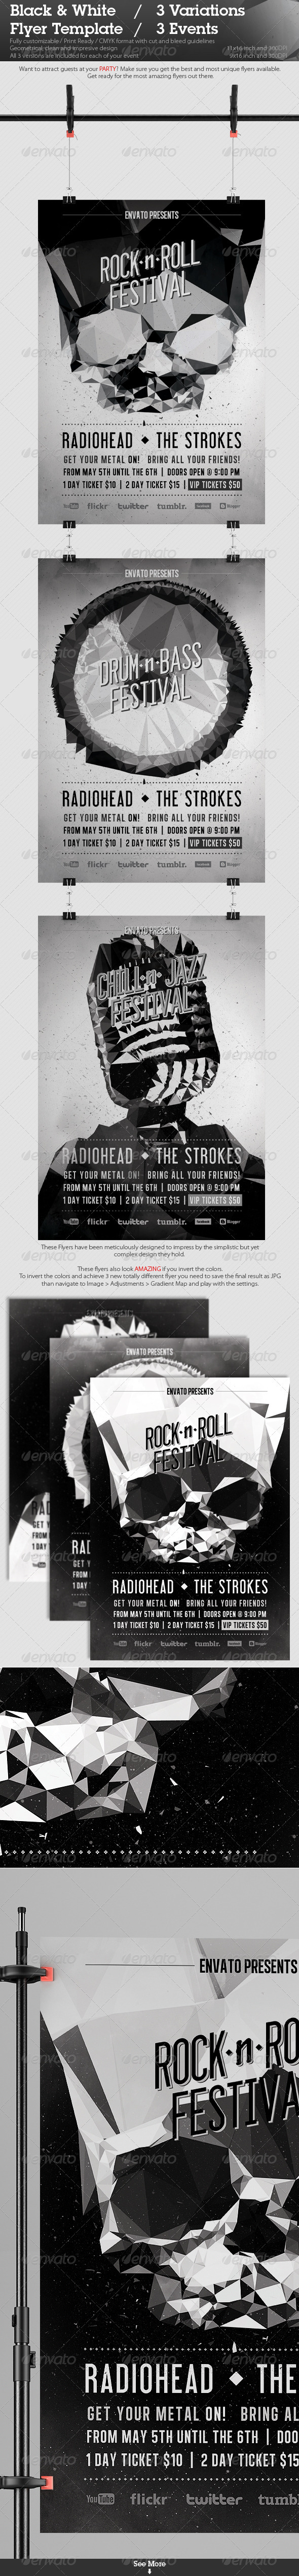 Black White Flyer Template by ConstantinPotorac – Black and White Flyer Template